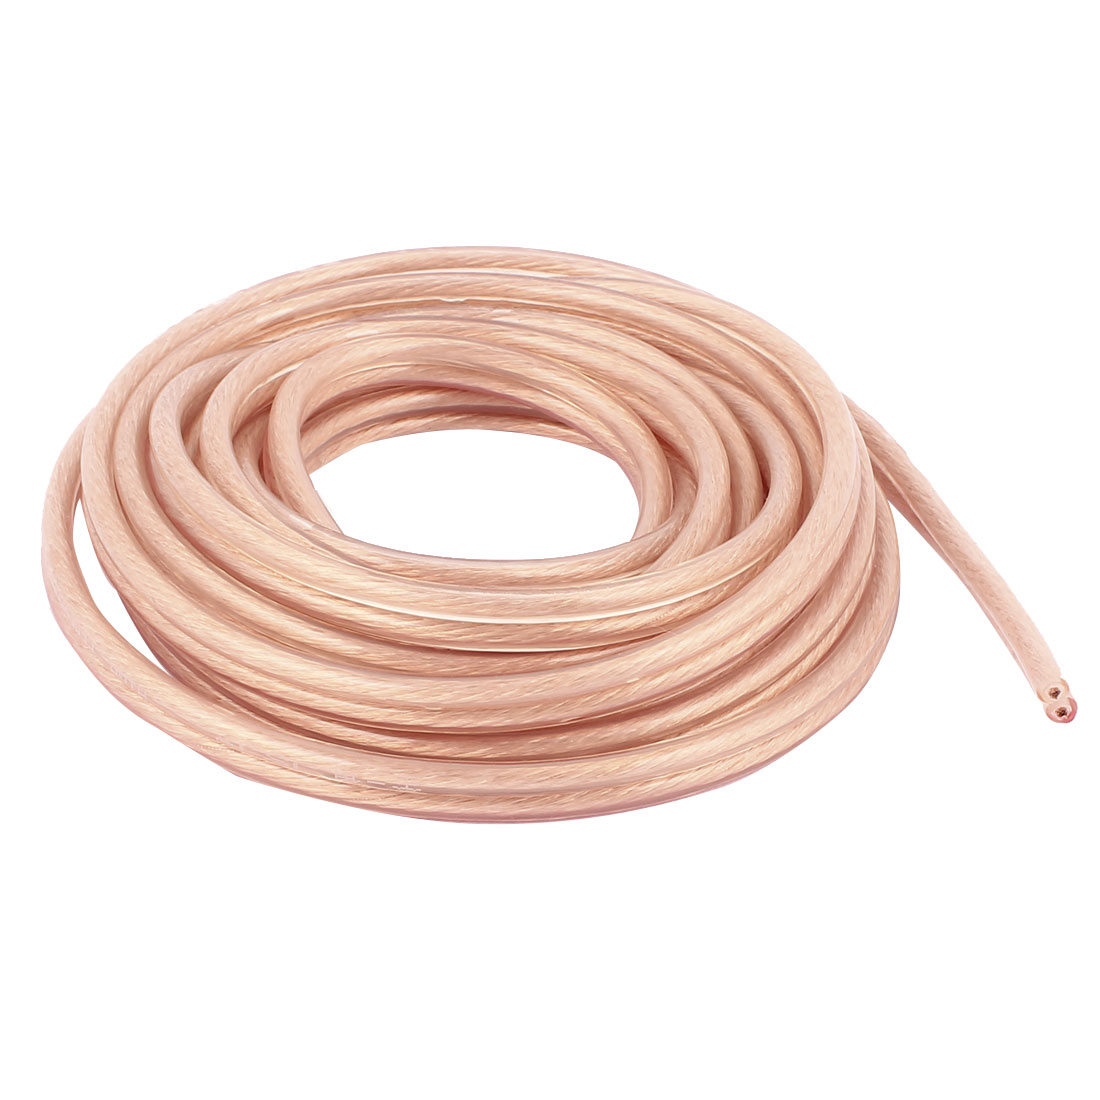 3 Meter 9.8 Ft Speaker 400 Copper Wire Core Cable Coil Car Home Audio Gold Tone